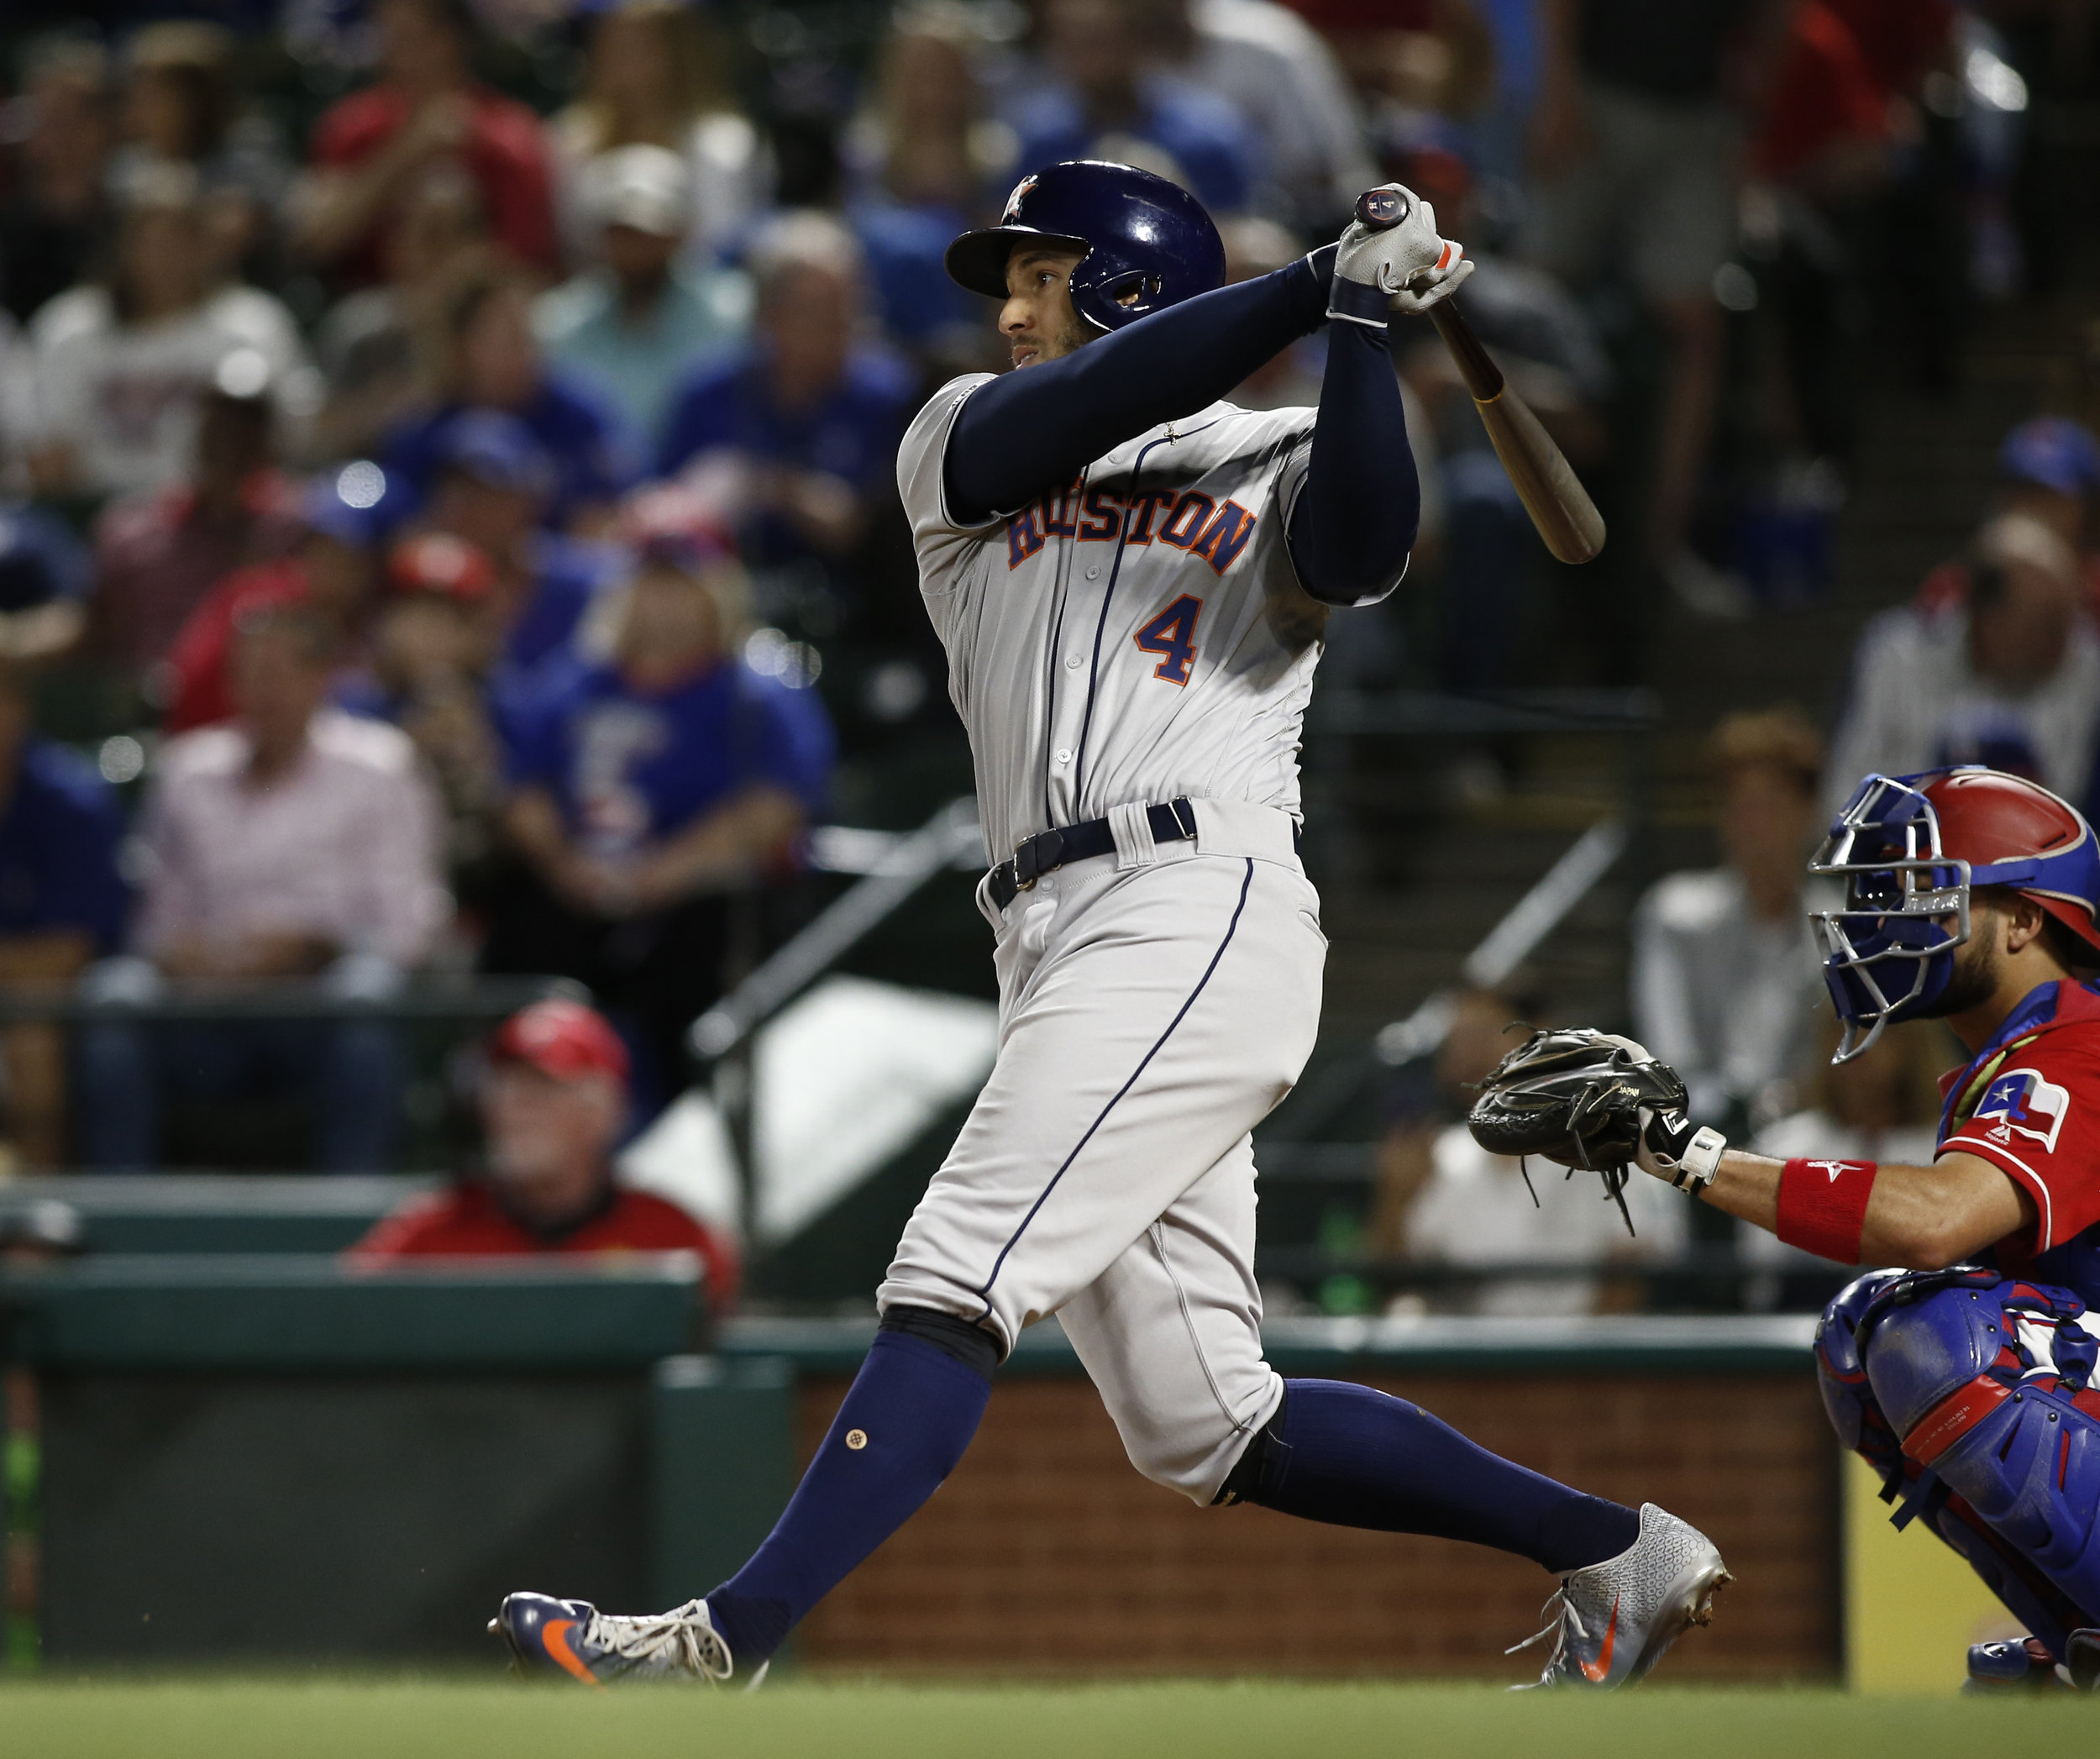 Houston Astros' George Springer (4) hits a two-run home run against the Texas Rangers during the seventh inning of a baseball game Saturday, April 20, 2019, in Arlington, Texas. (AP Photo/Mike Stone)